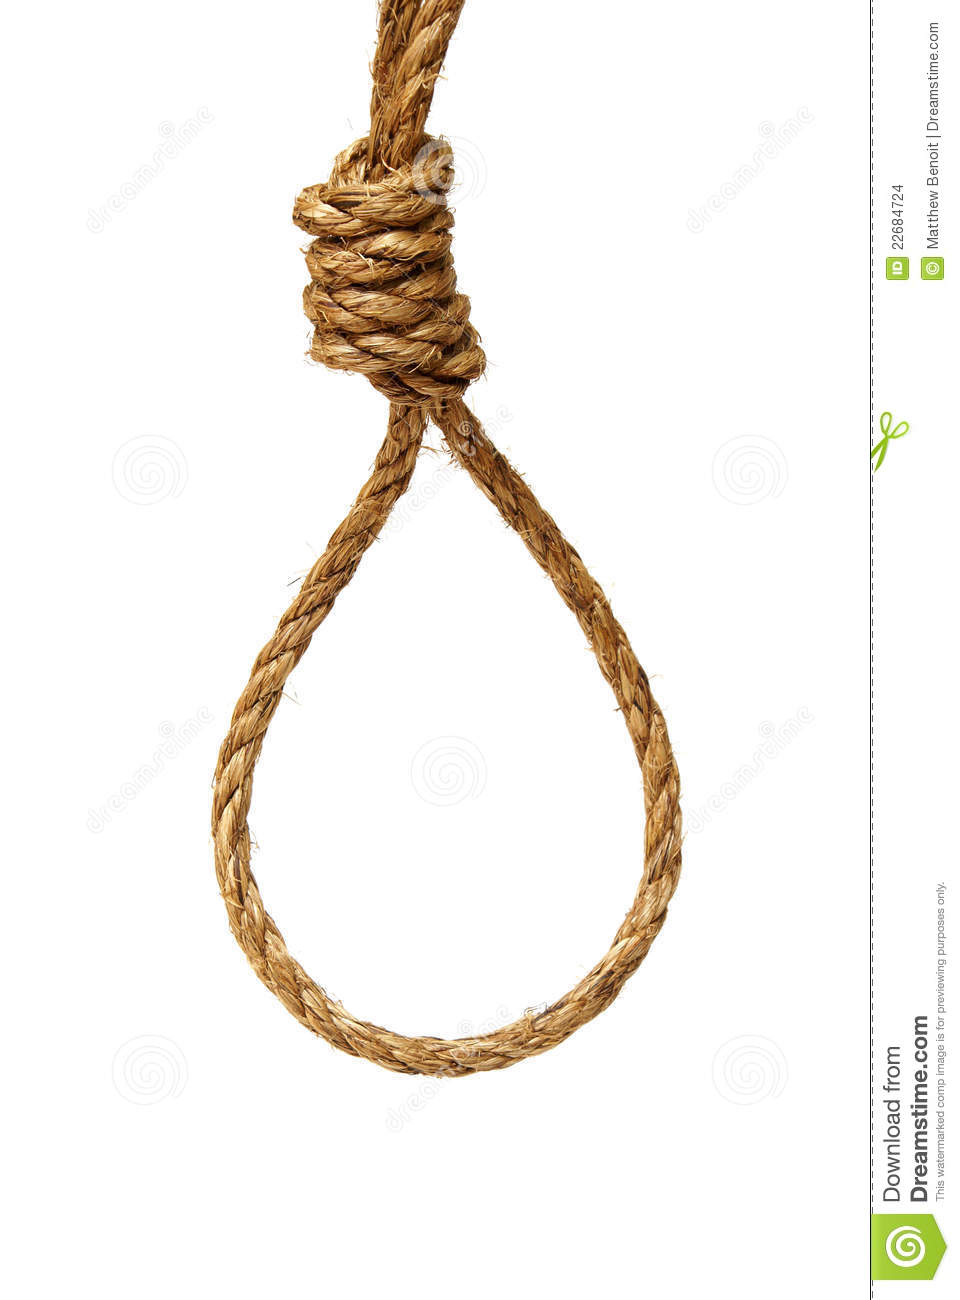 hight resolution of a ready made noose on a white background